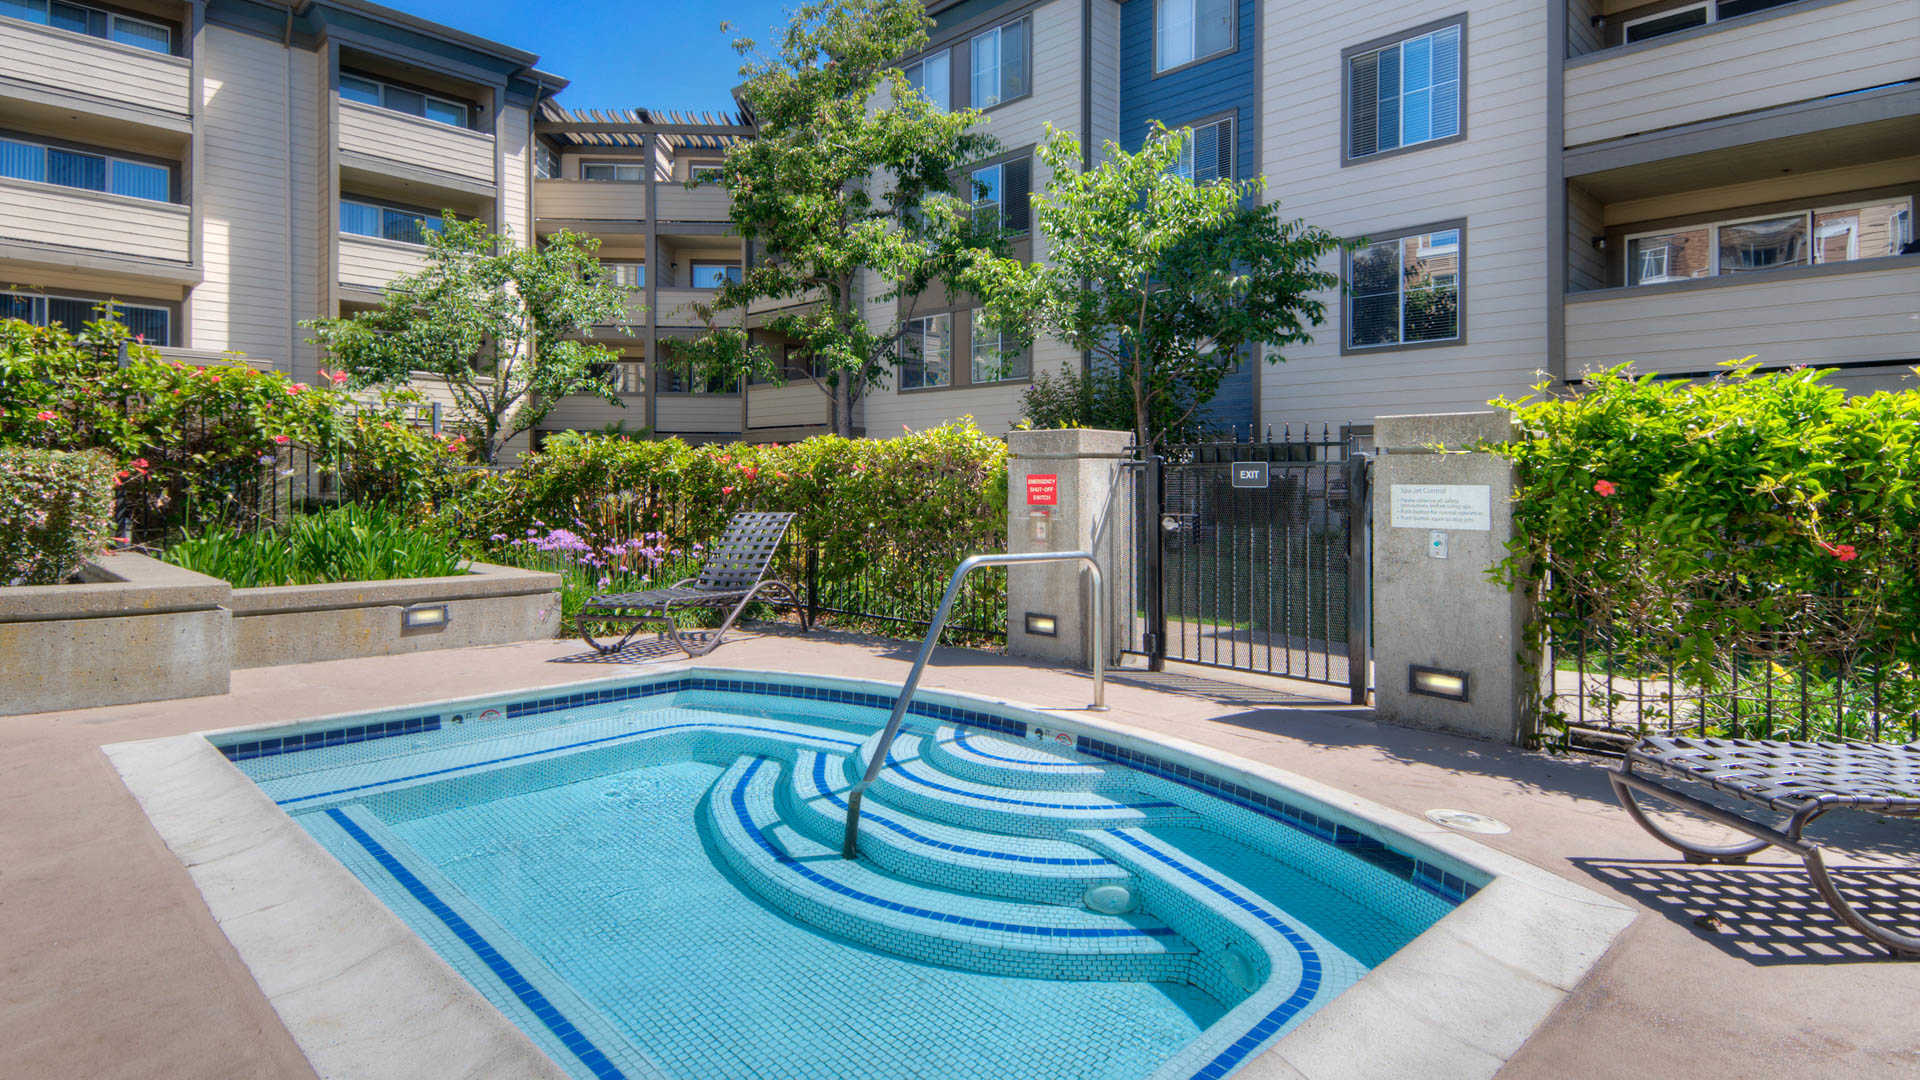 artistry-emeryville-apartments-swimming-pool.jpg